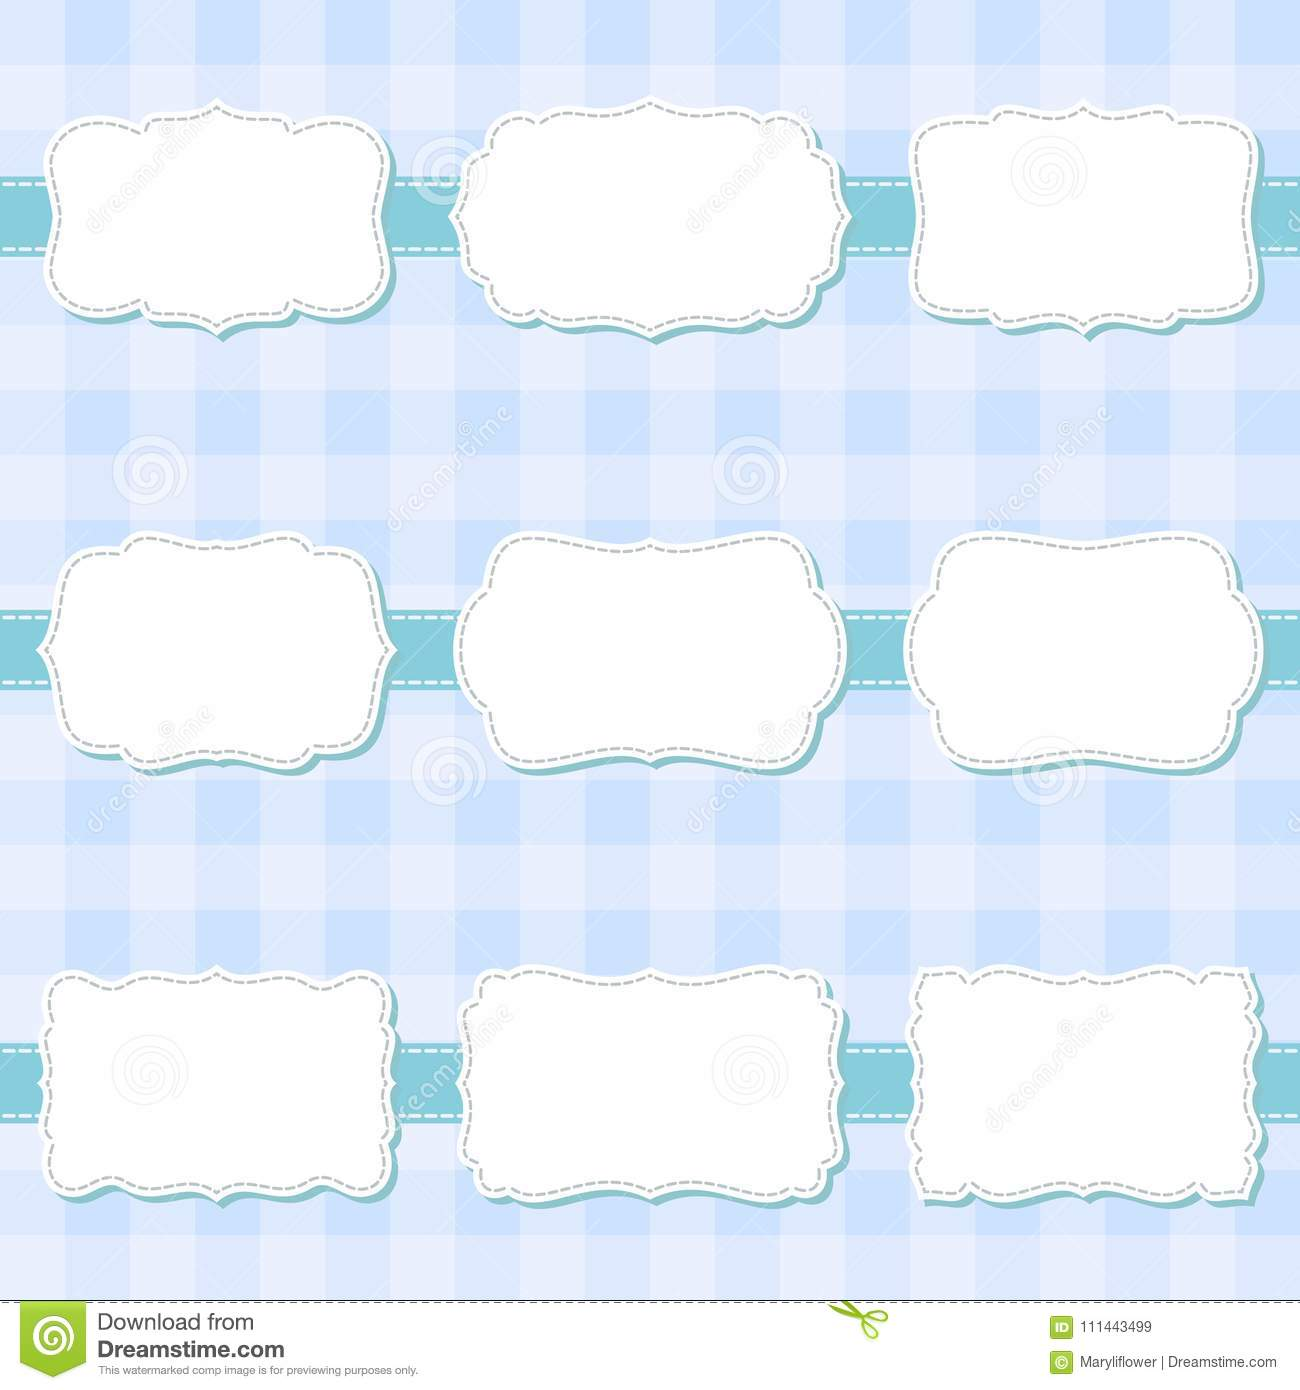 Set of cute cartoon decorative sewing blank frames. Shape labels for baby shower, banner, sticker, scrapbook template.